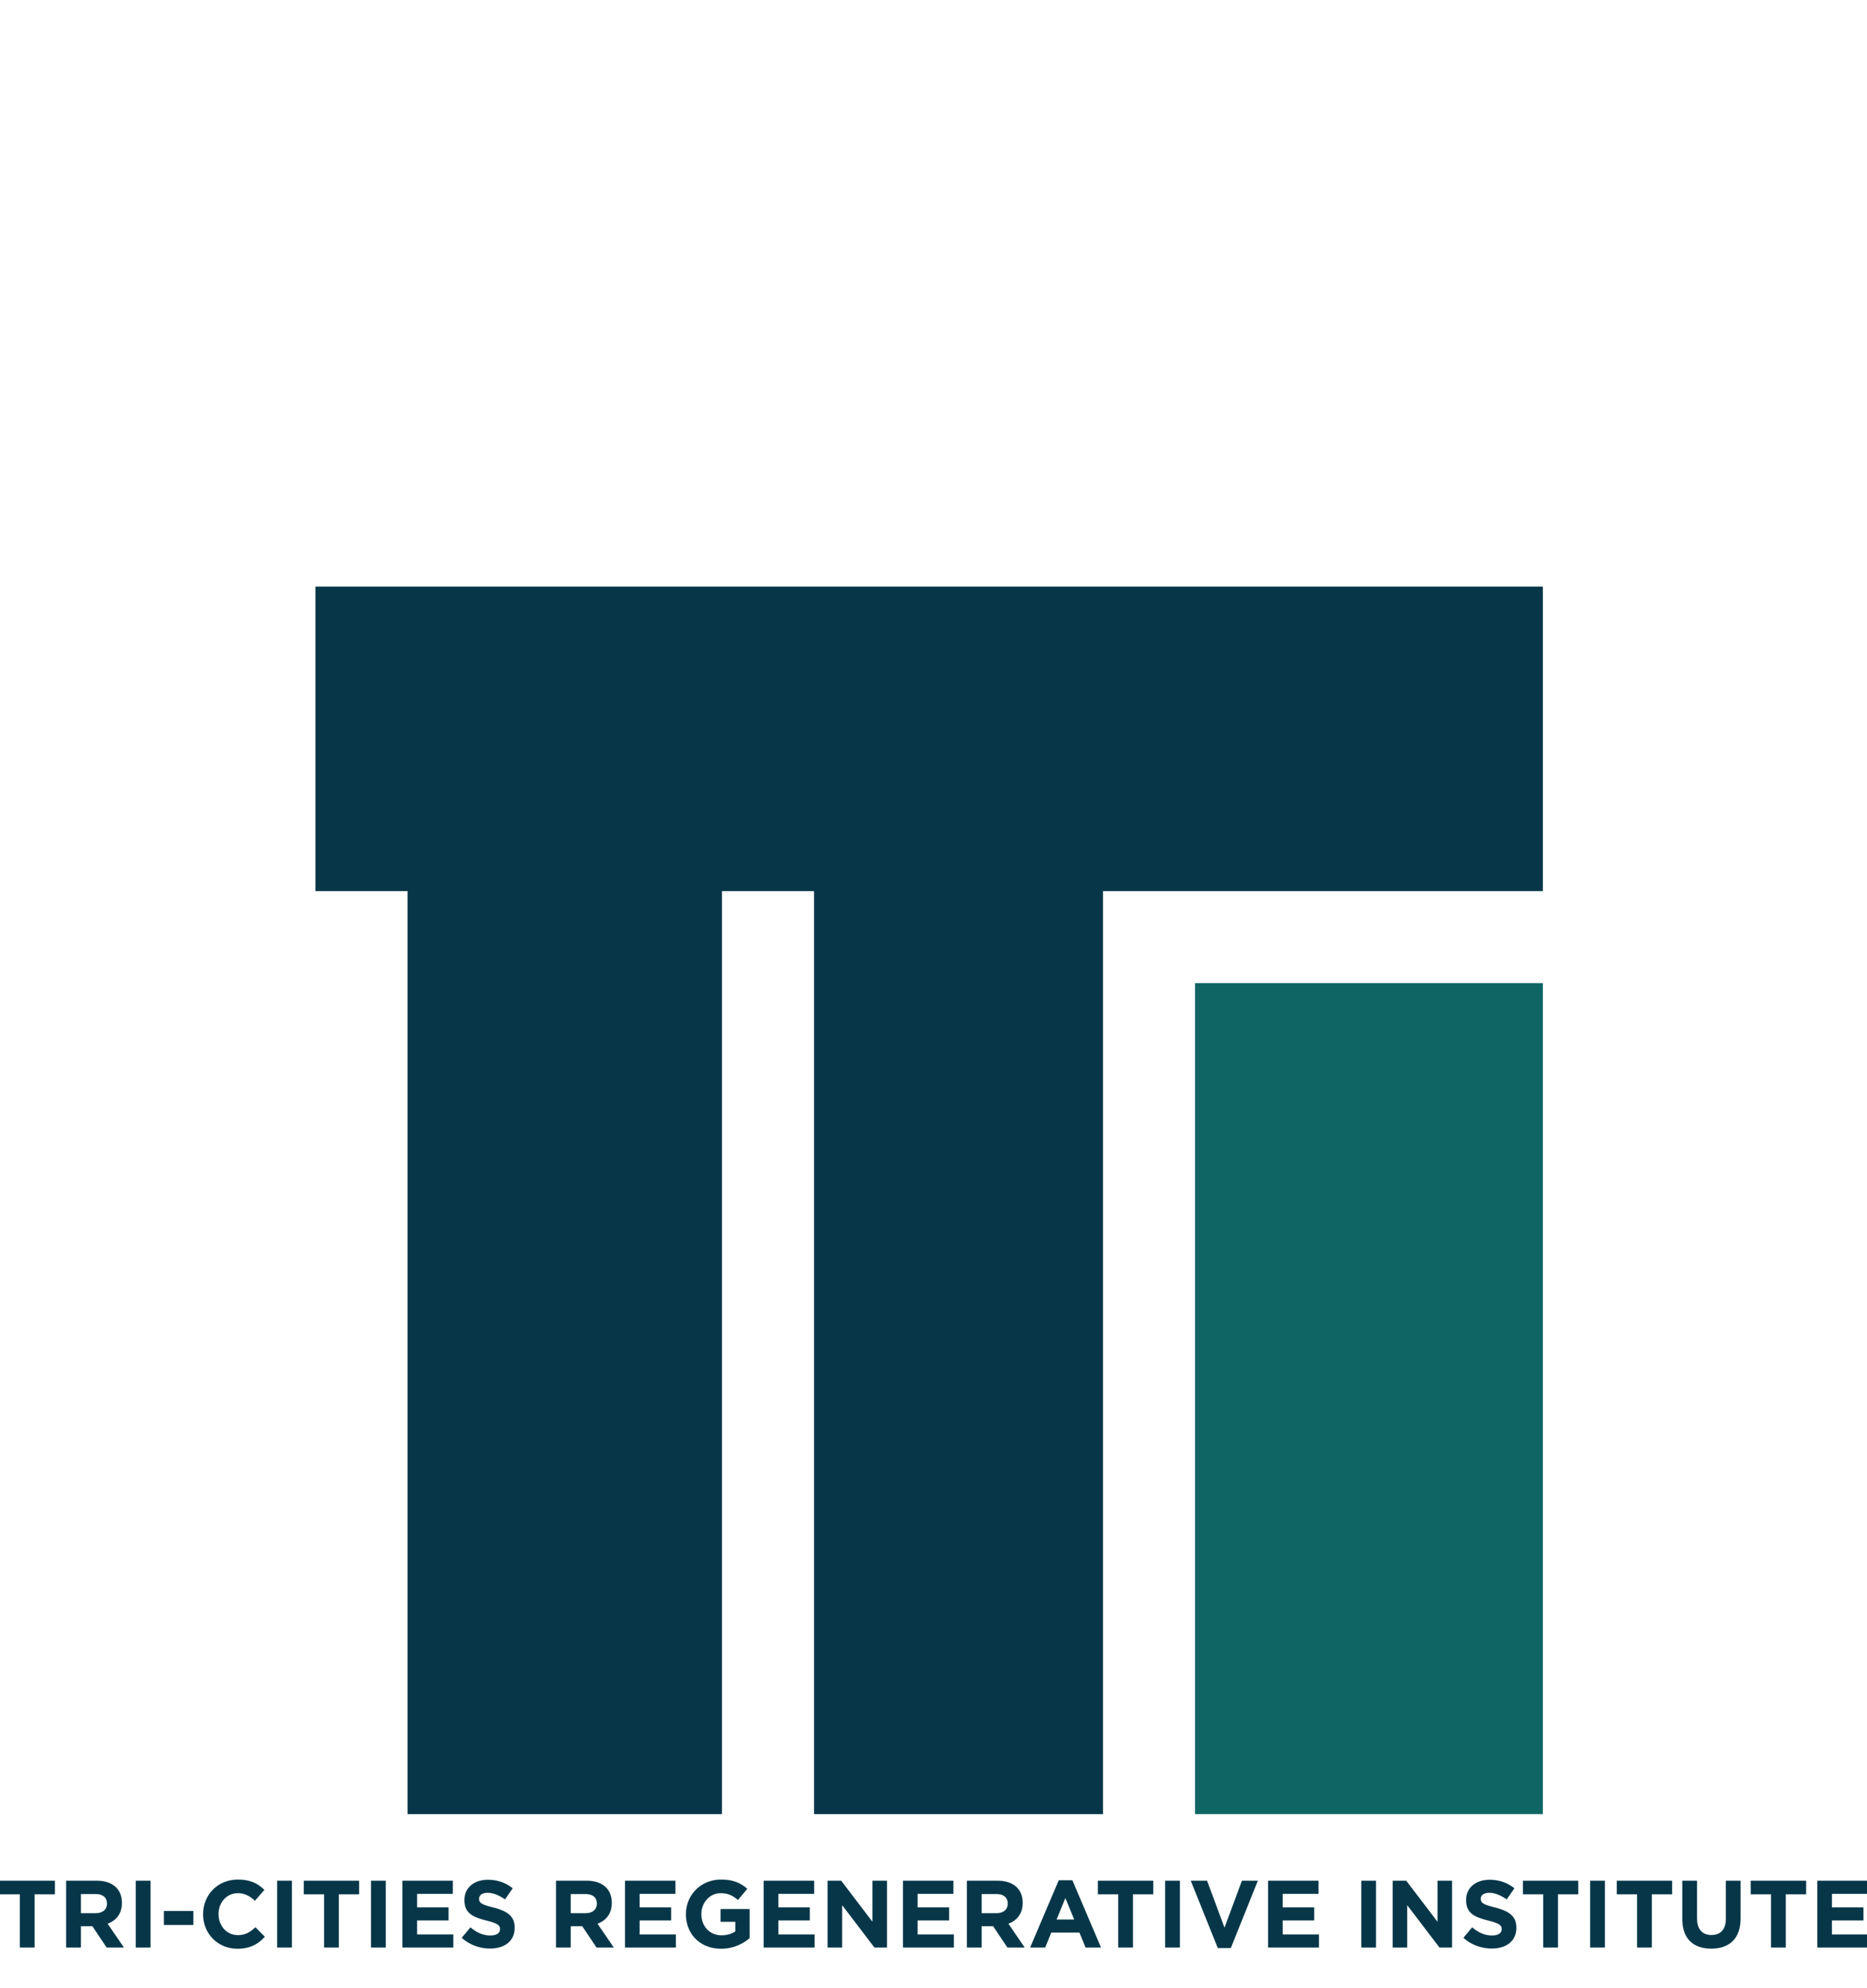 Tri-Cities Regenerative Institute